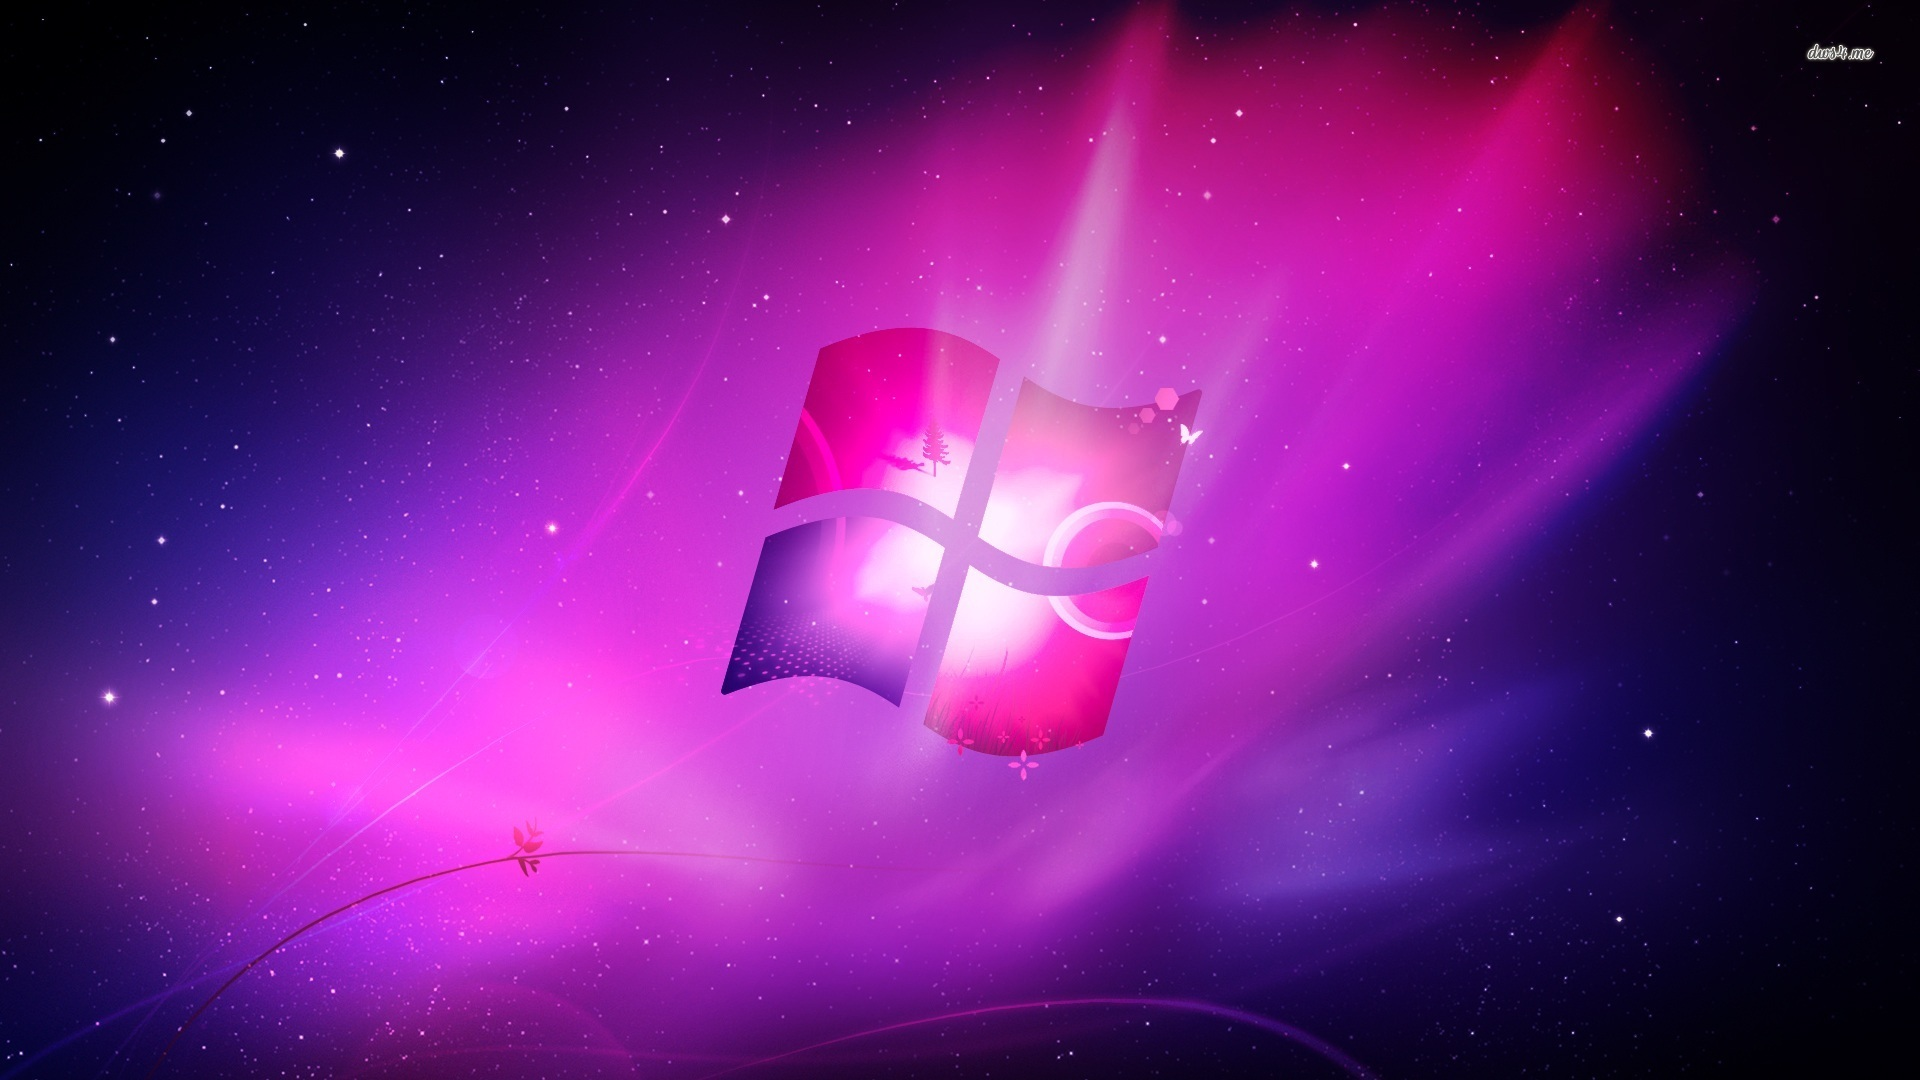 Awesome background pictures wallpapersafari - Purple Windows Wallpaper Wallpapersafari